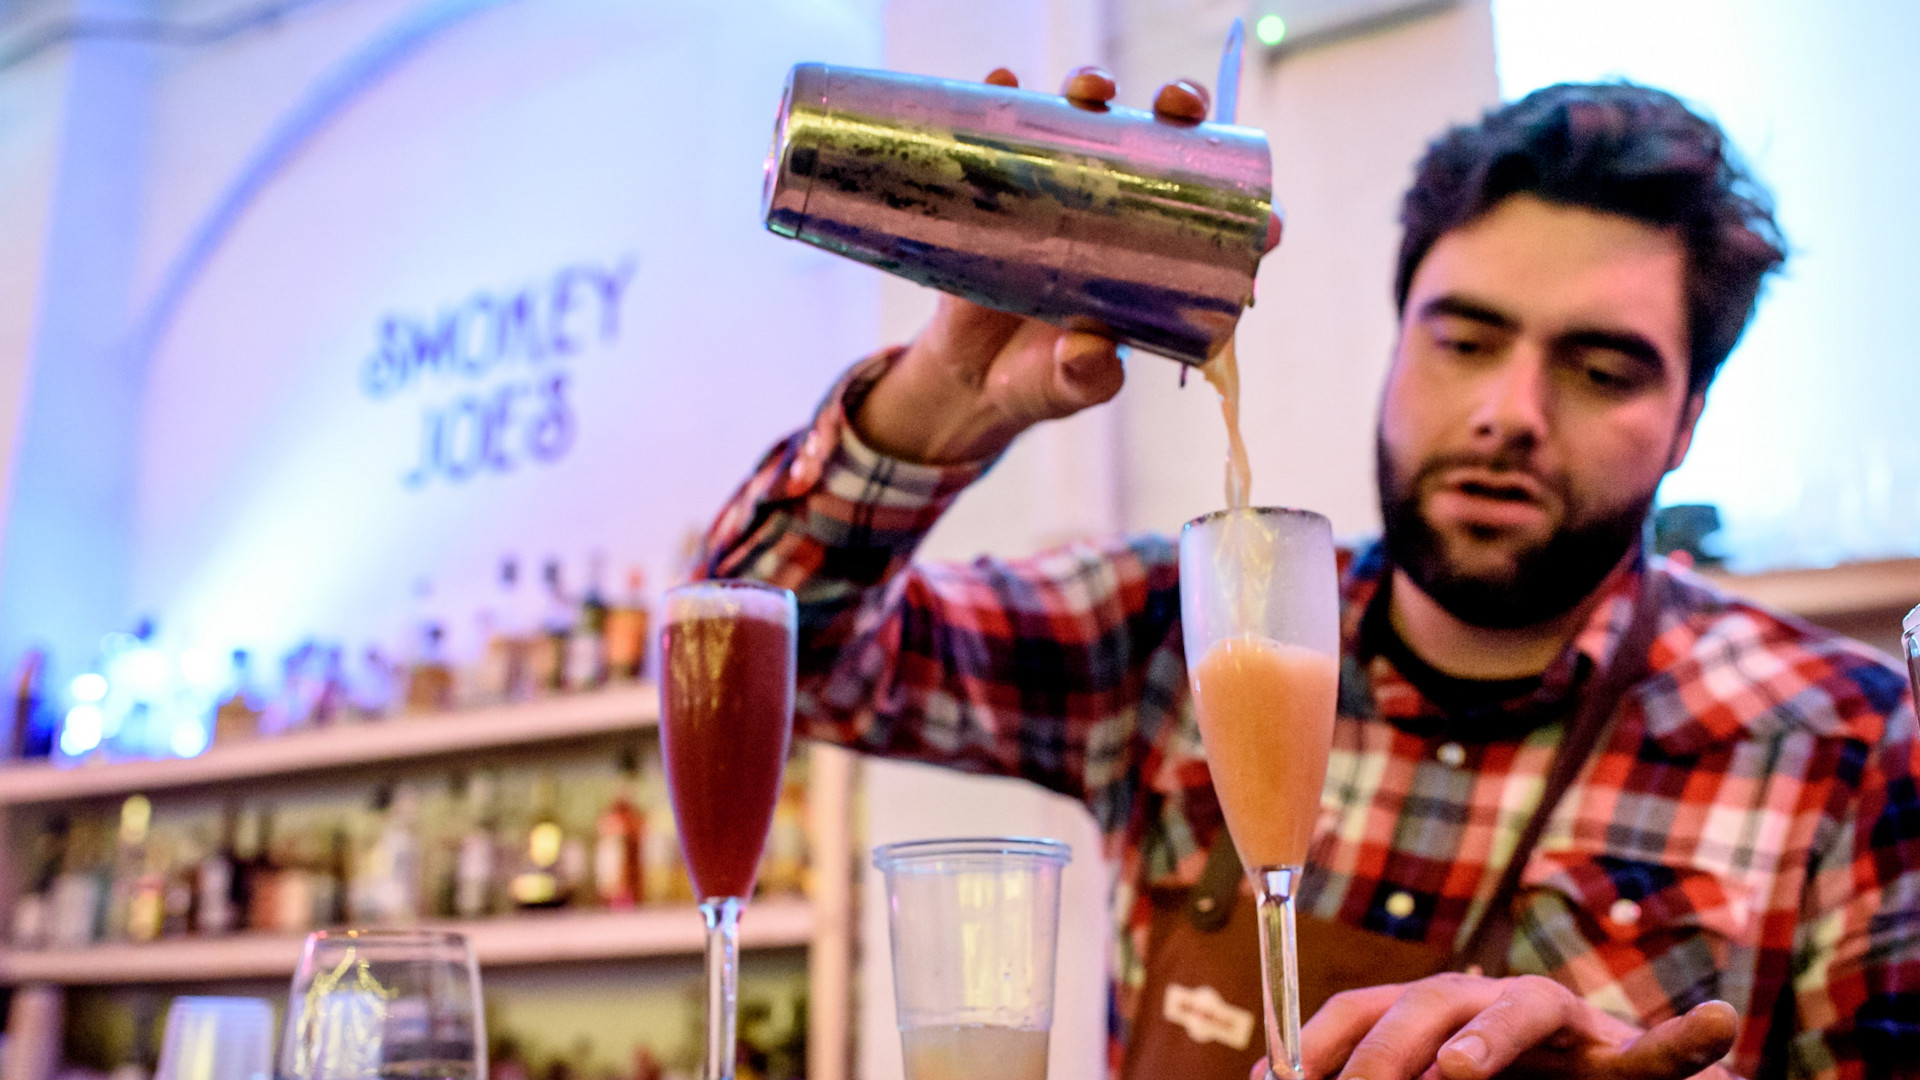 Get a free drink at Peckham Feastival with Foodism